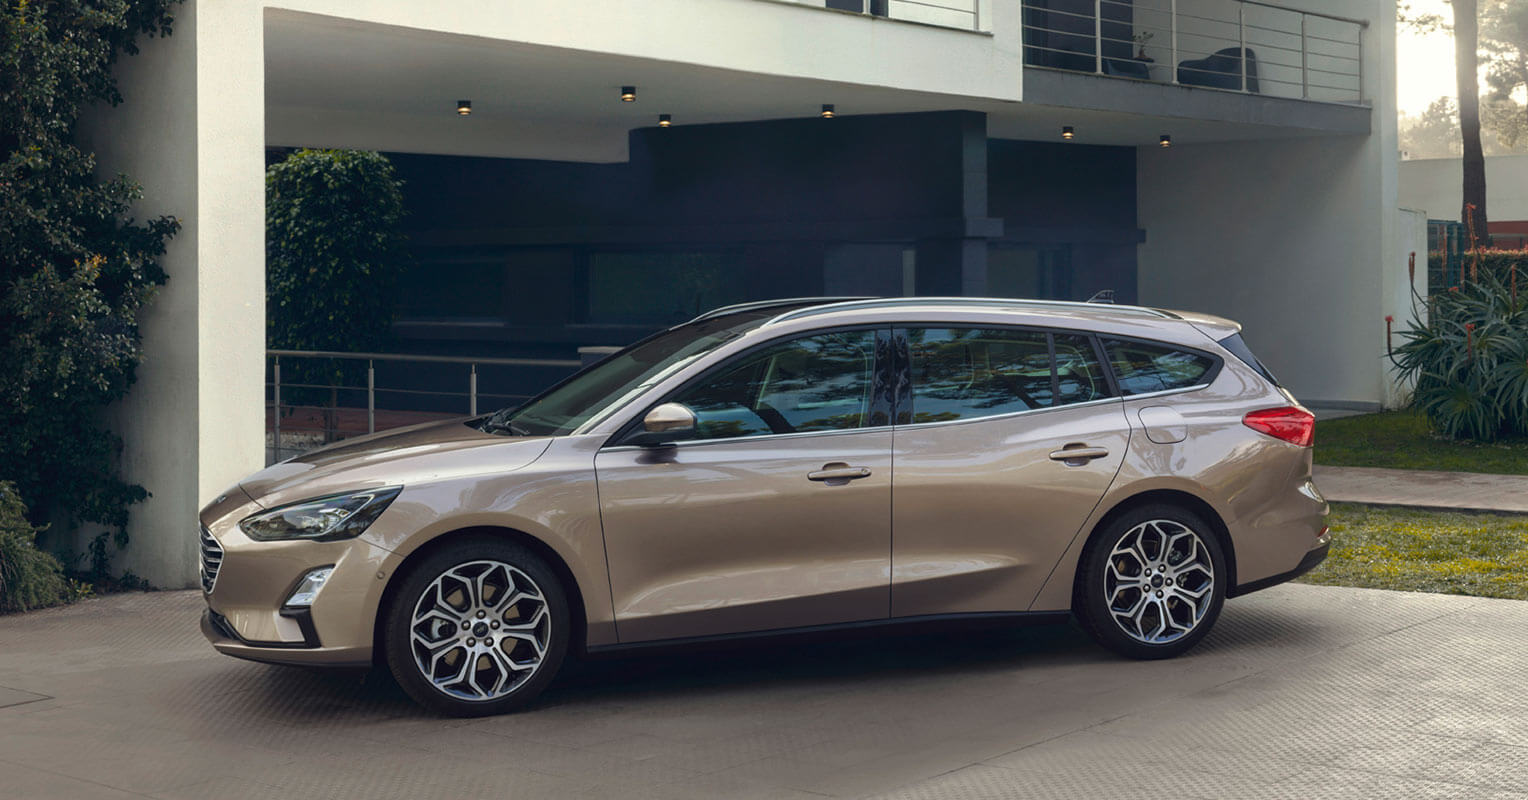 Ford Focus 2019 wagon